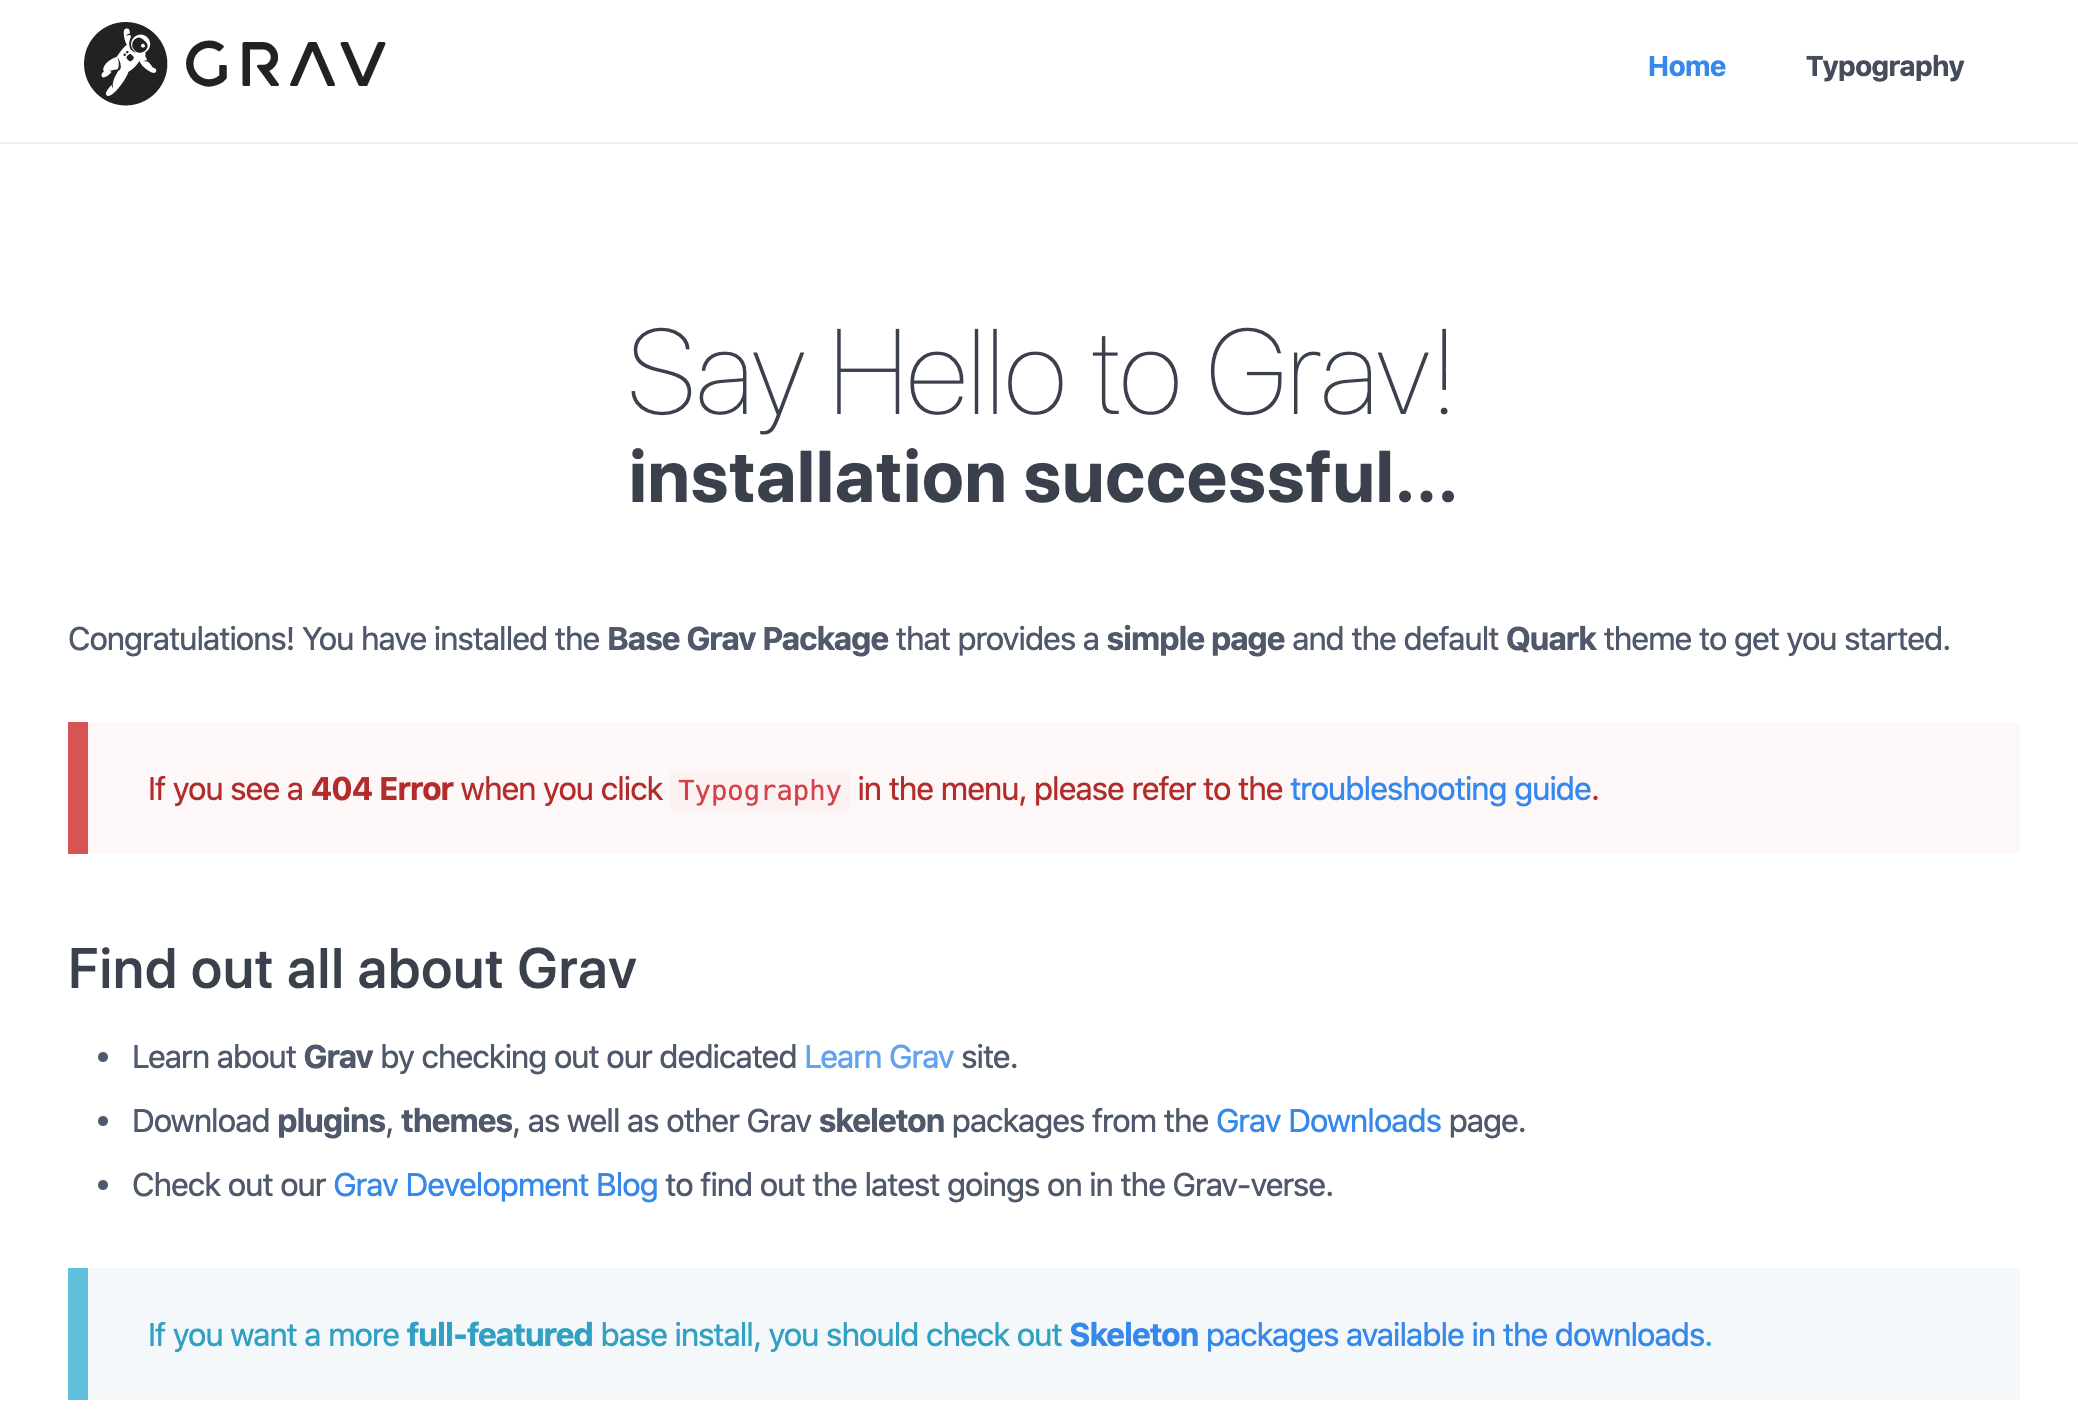 Default page provides general information about Grav.